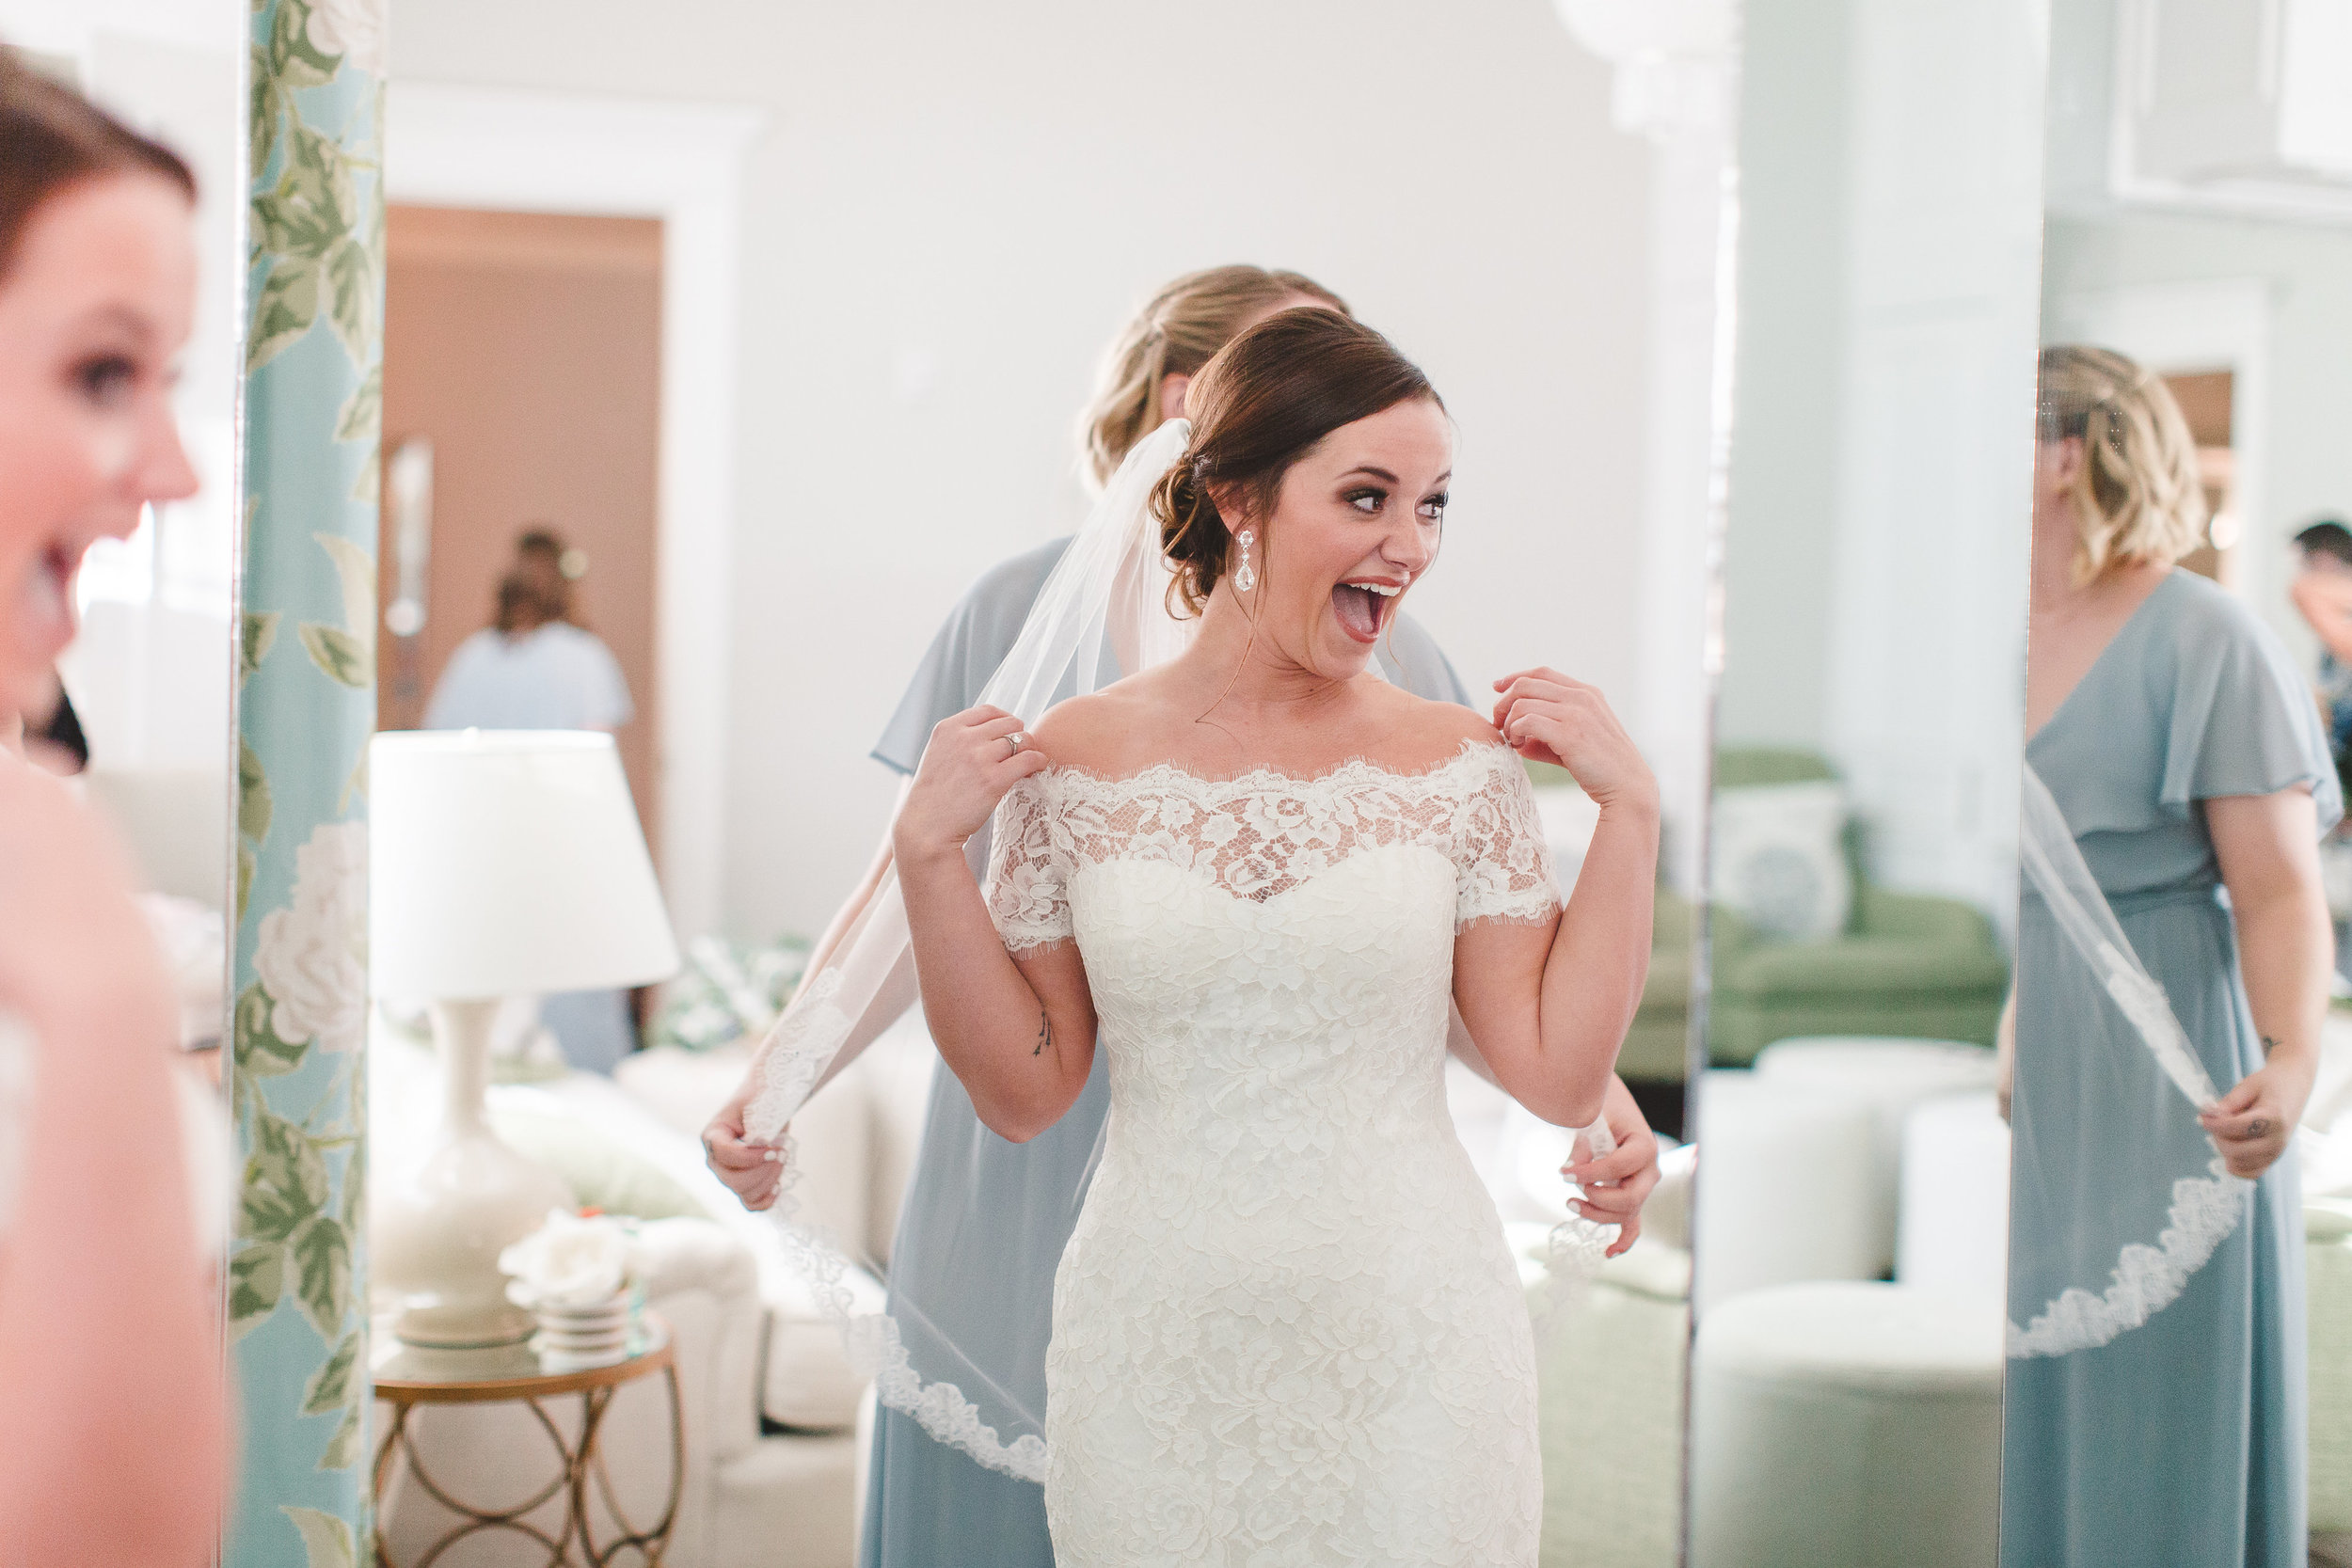 Off the Shoulder Lace Wedding Gown | Rose Gold and Dusty Blue Winter Wedding in Dallas, TX